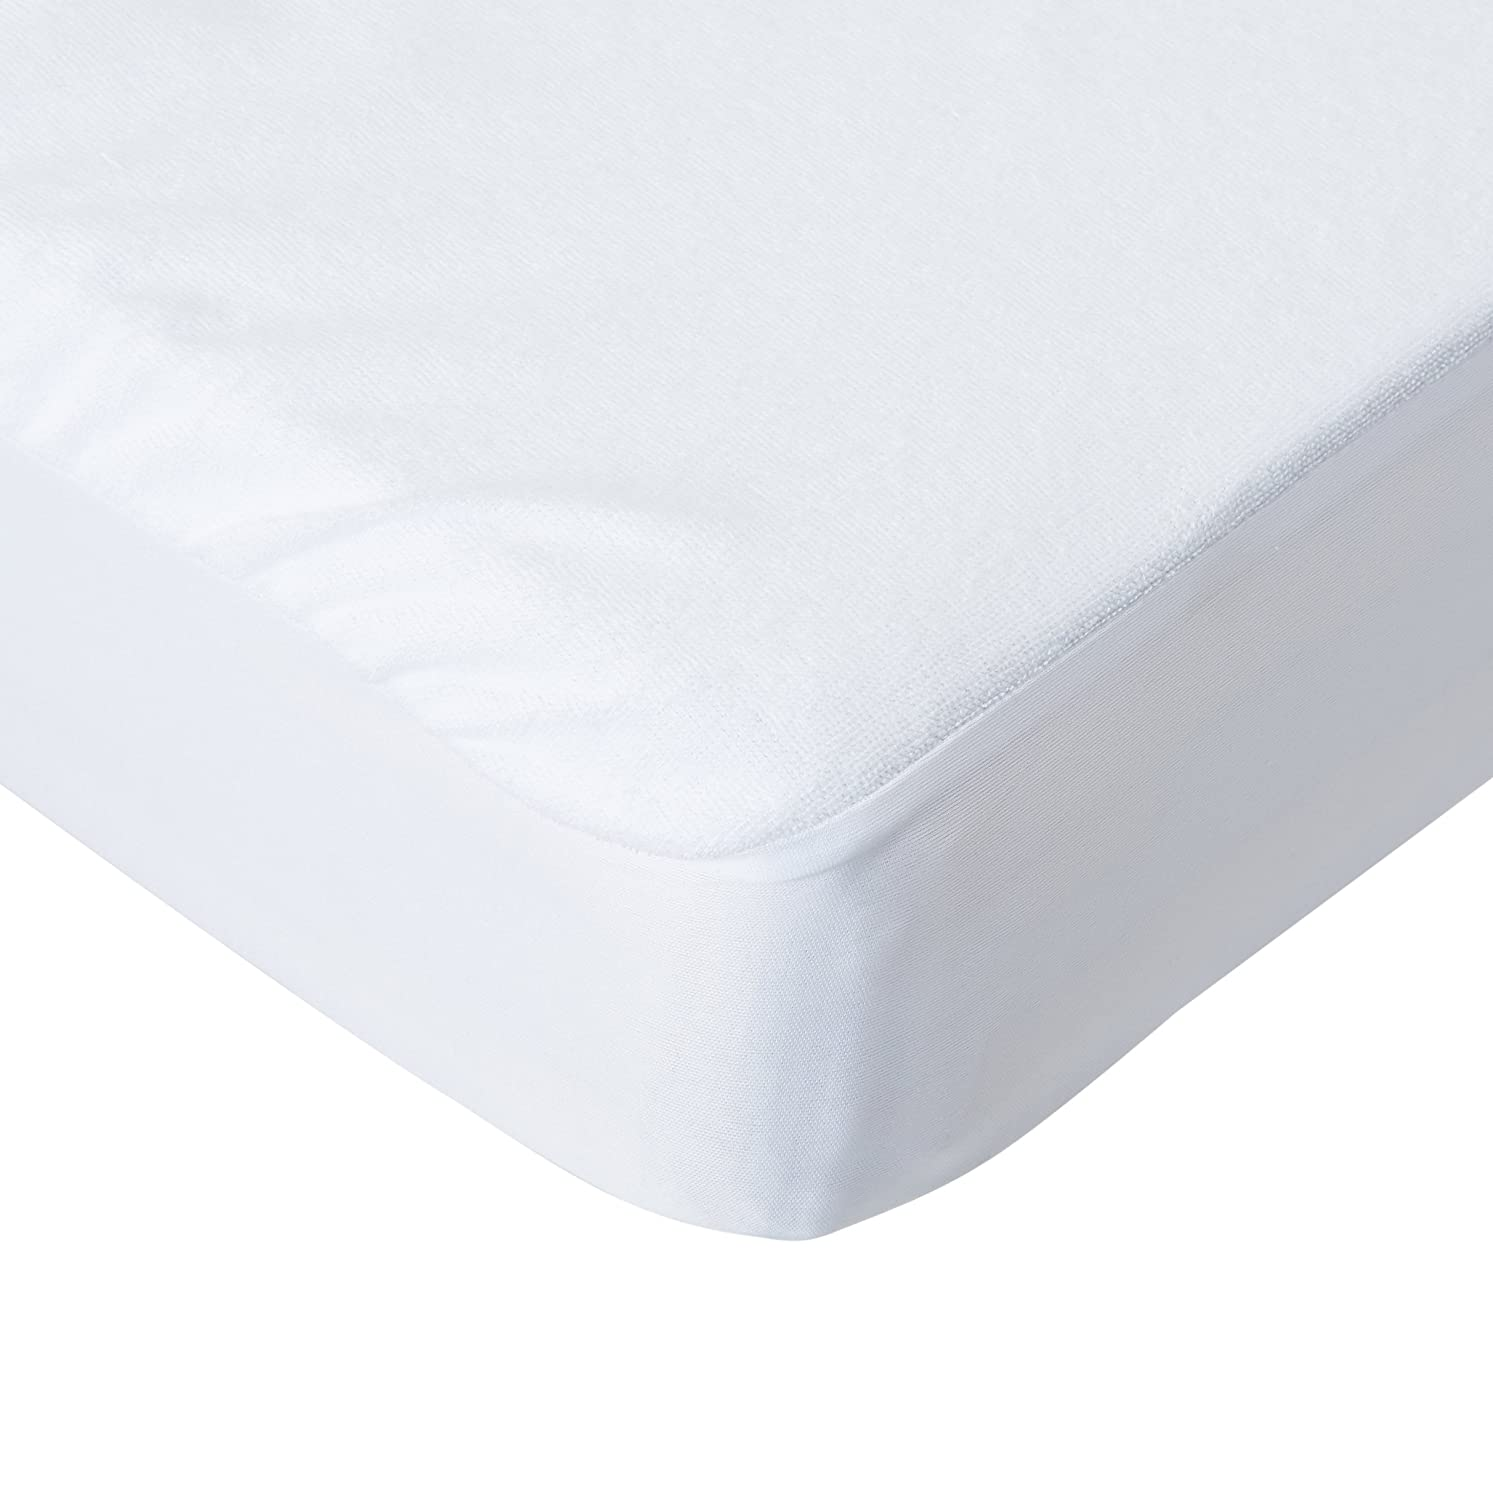 Very Helpful Crib Mattress Pad Amazon.com : The Best Crib Mattress Protector by Primary Comfort - All  Natural, Waterproof - Soft, Topper Style Fitted Mattress Pad for Baby Crib  and ...